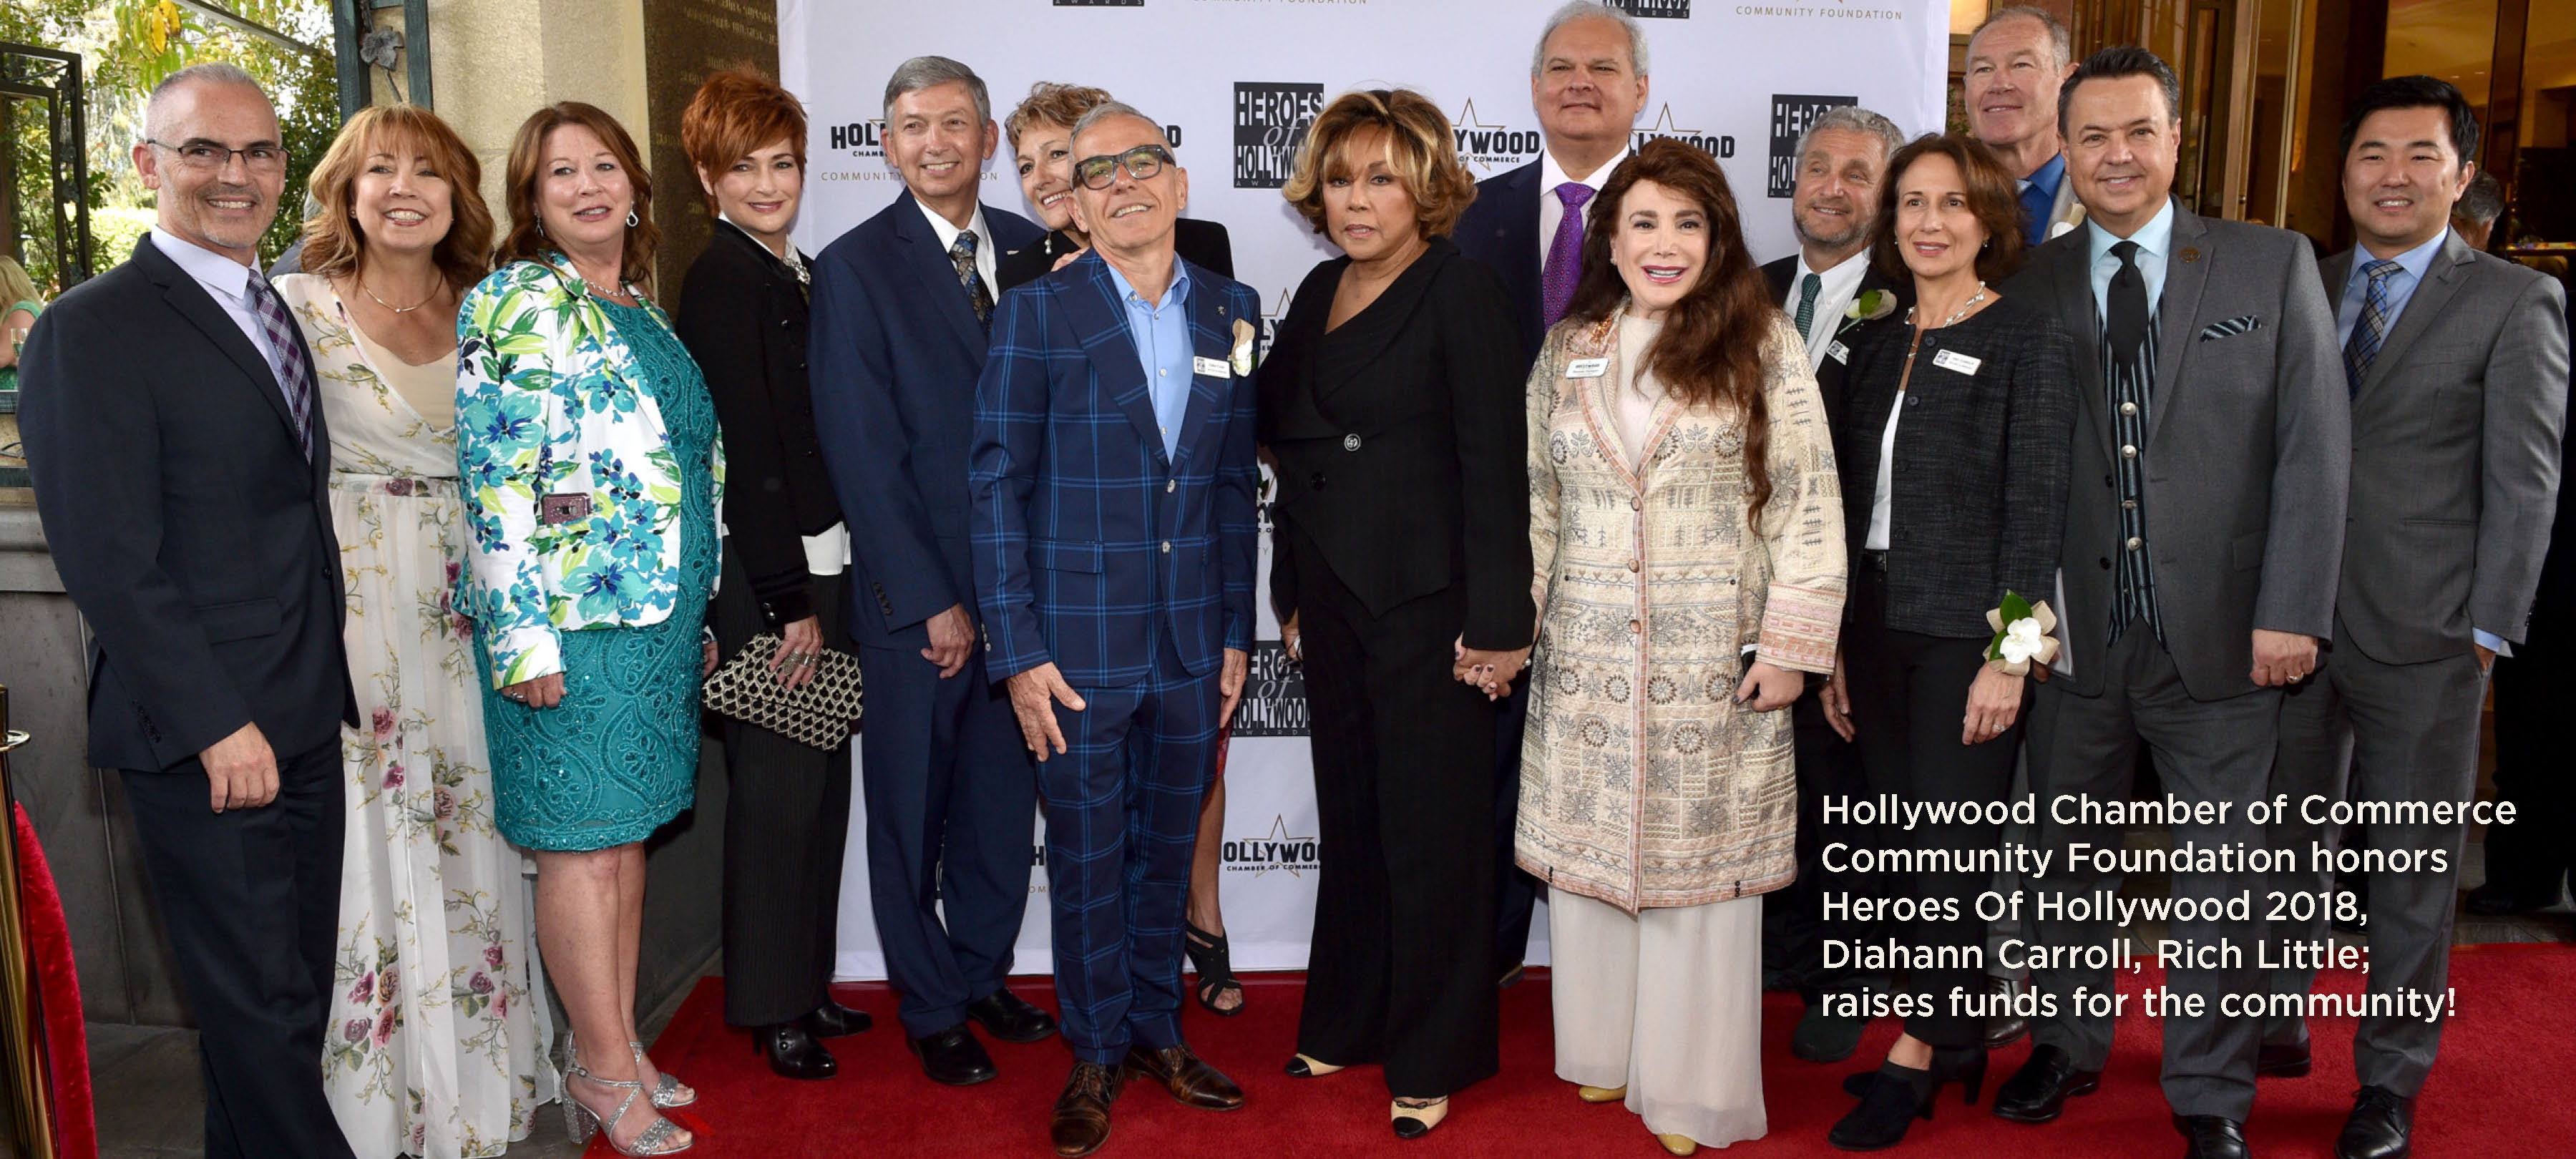 Hollywood Chamber of Commerce Community Foundation honors Heroes Of Hollywood 2018, Diahann Carroll, Rich Little; raises funds for the community!